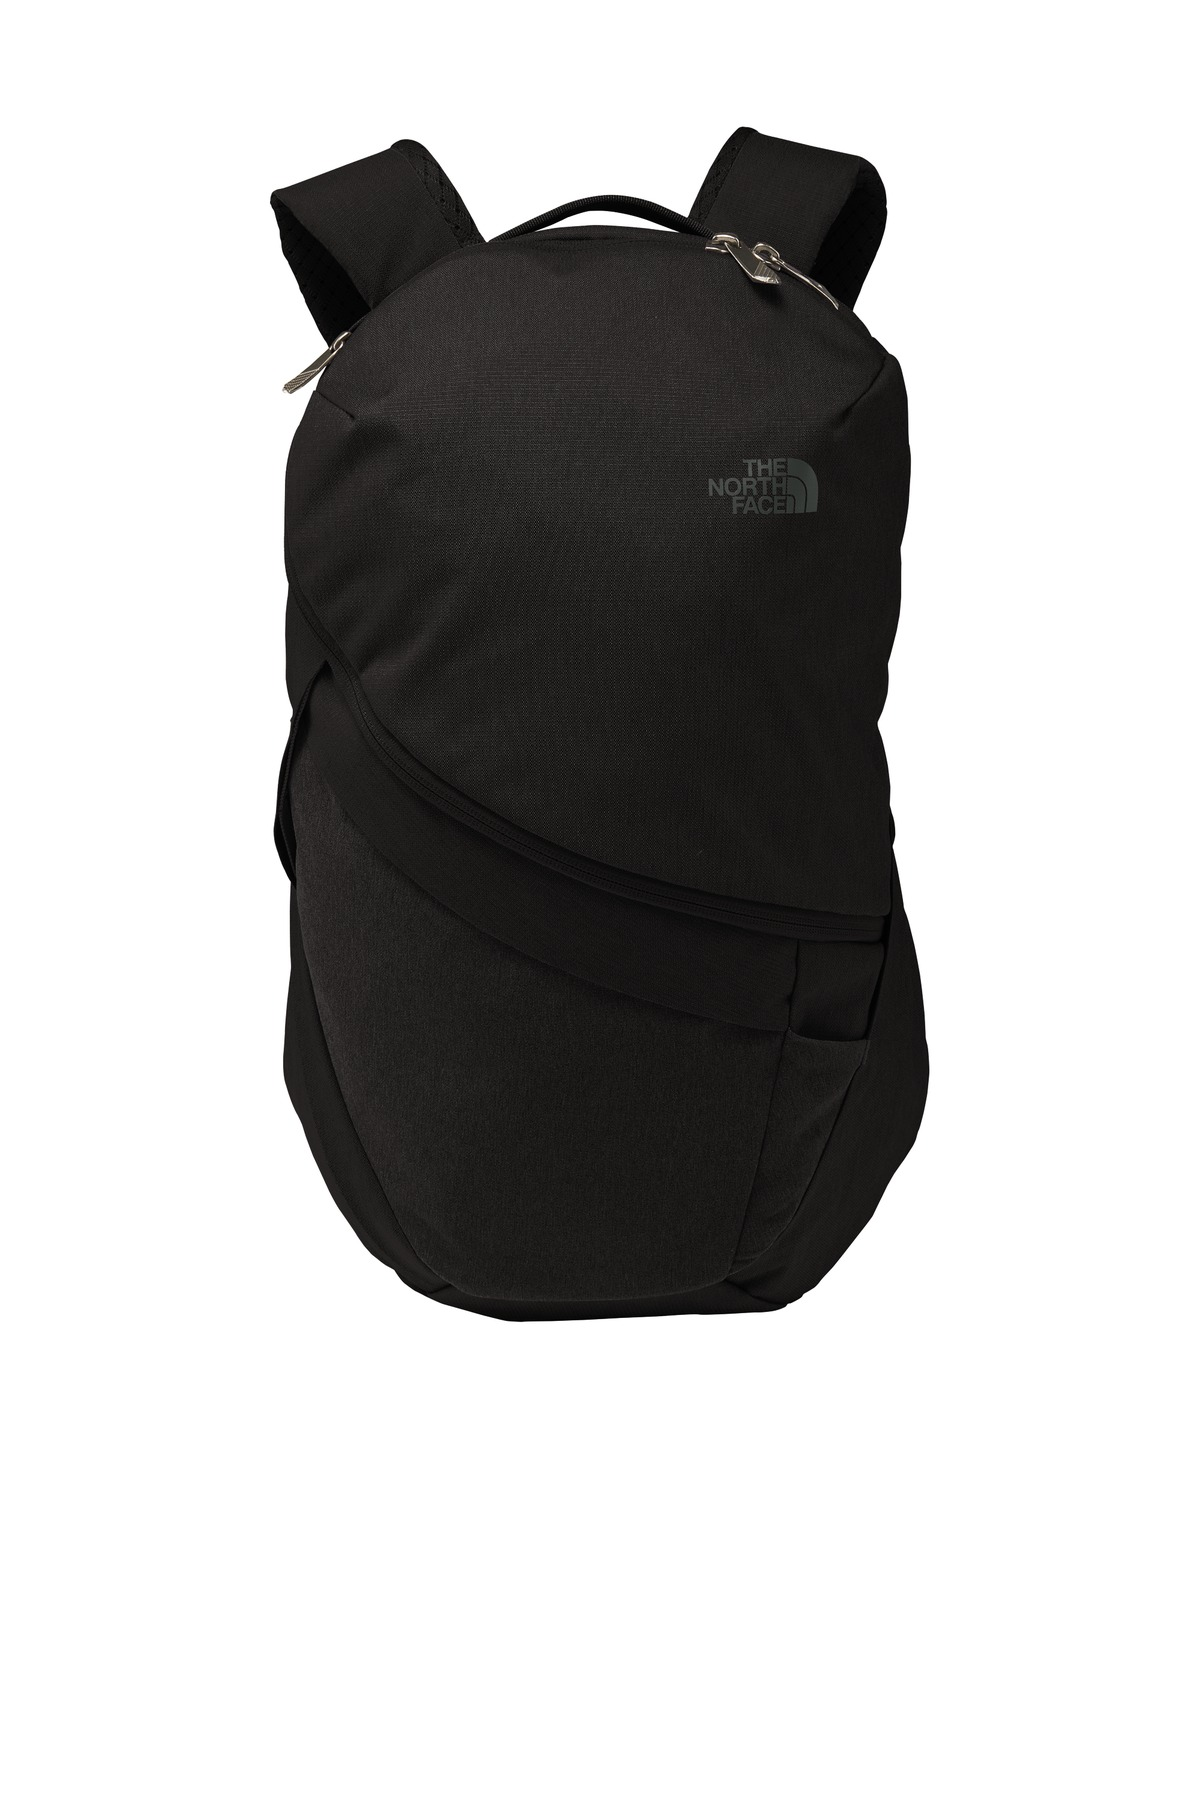 The North Face Aurora II Backpack.-The North Face